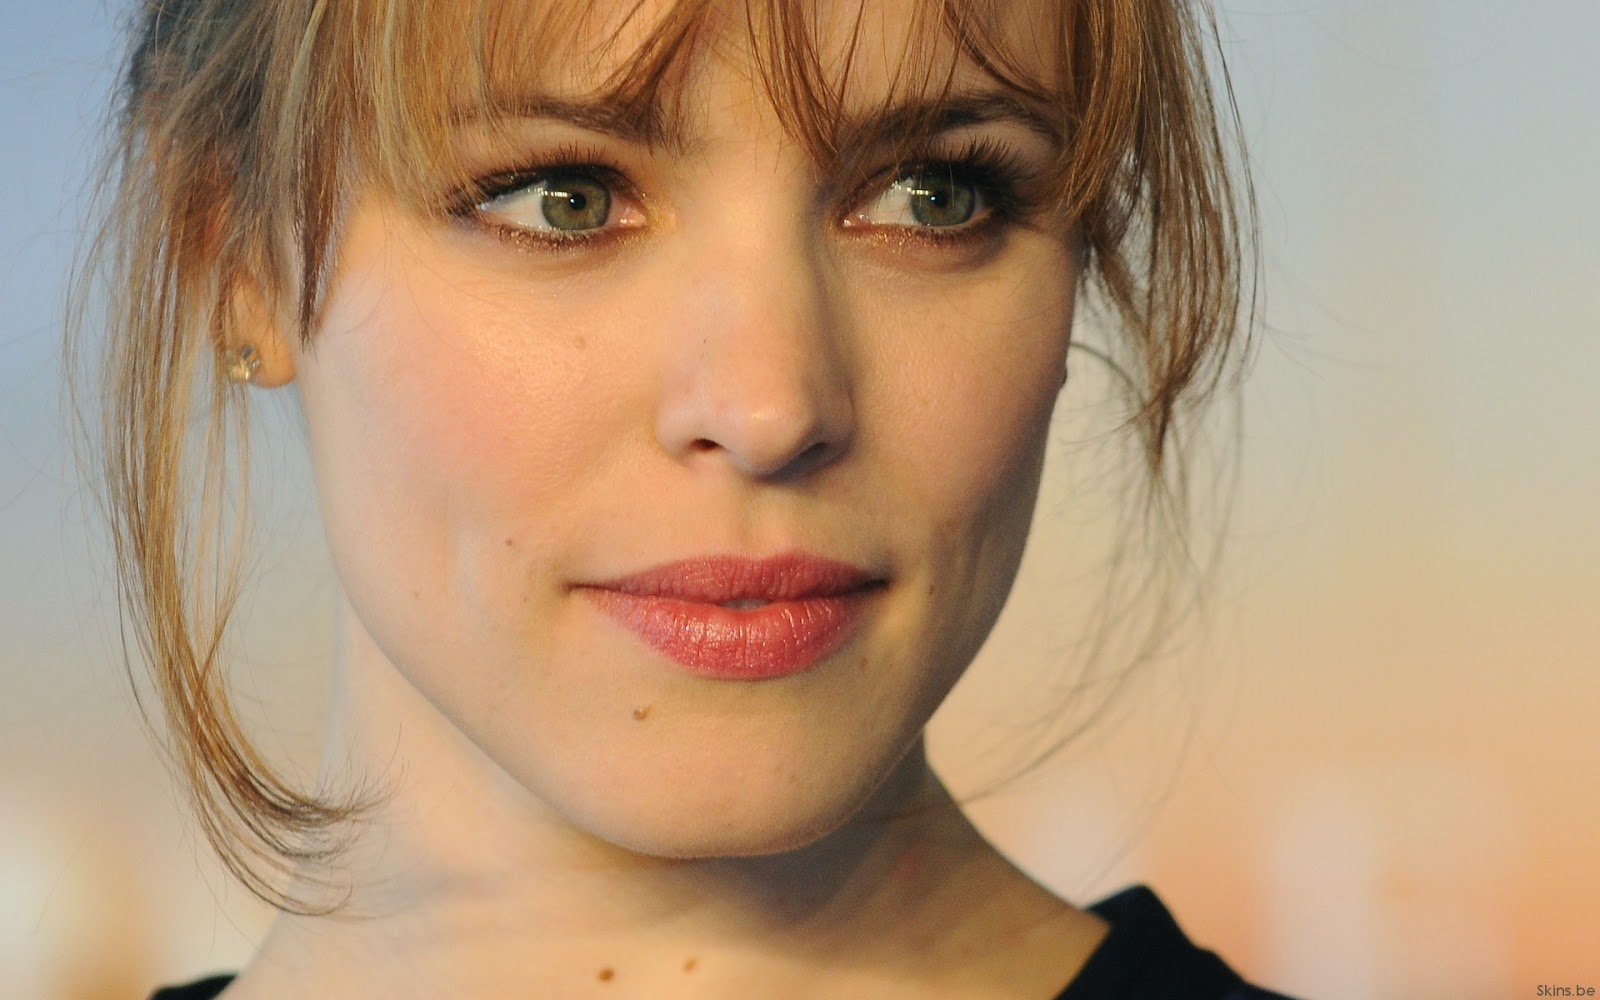 Rachel McAdams - The Vow: The True Events that Inspired the Movie